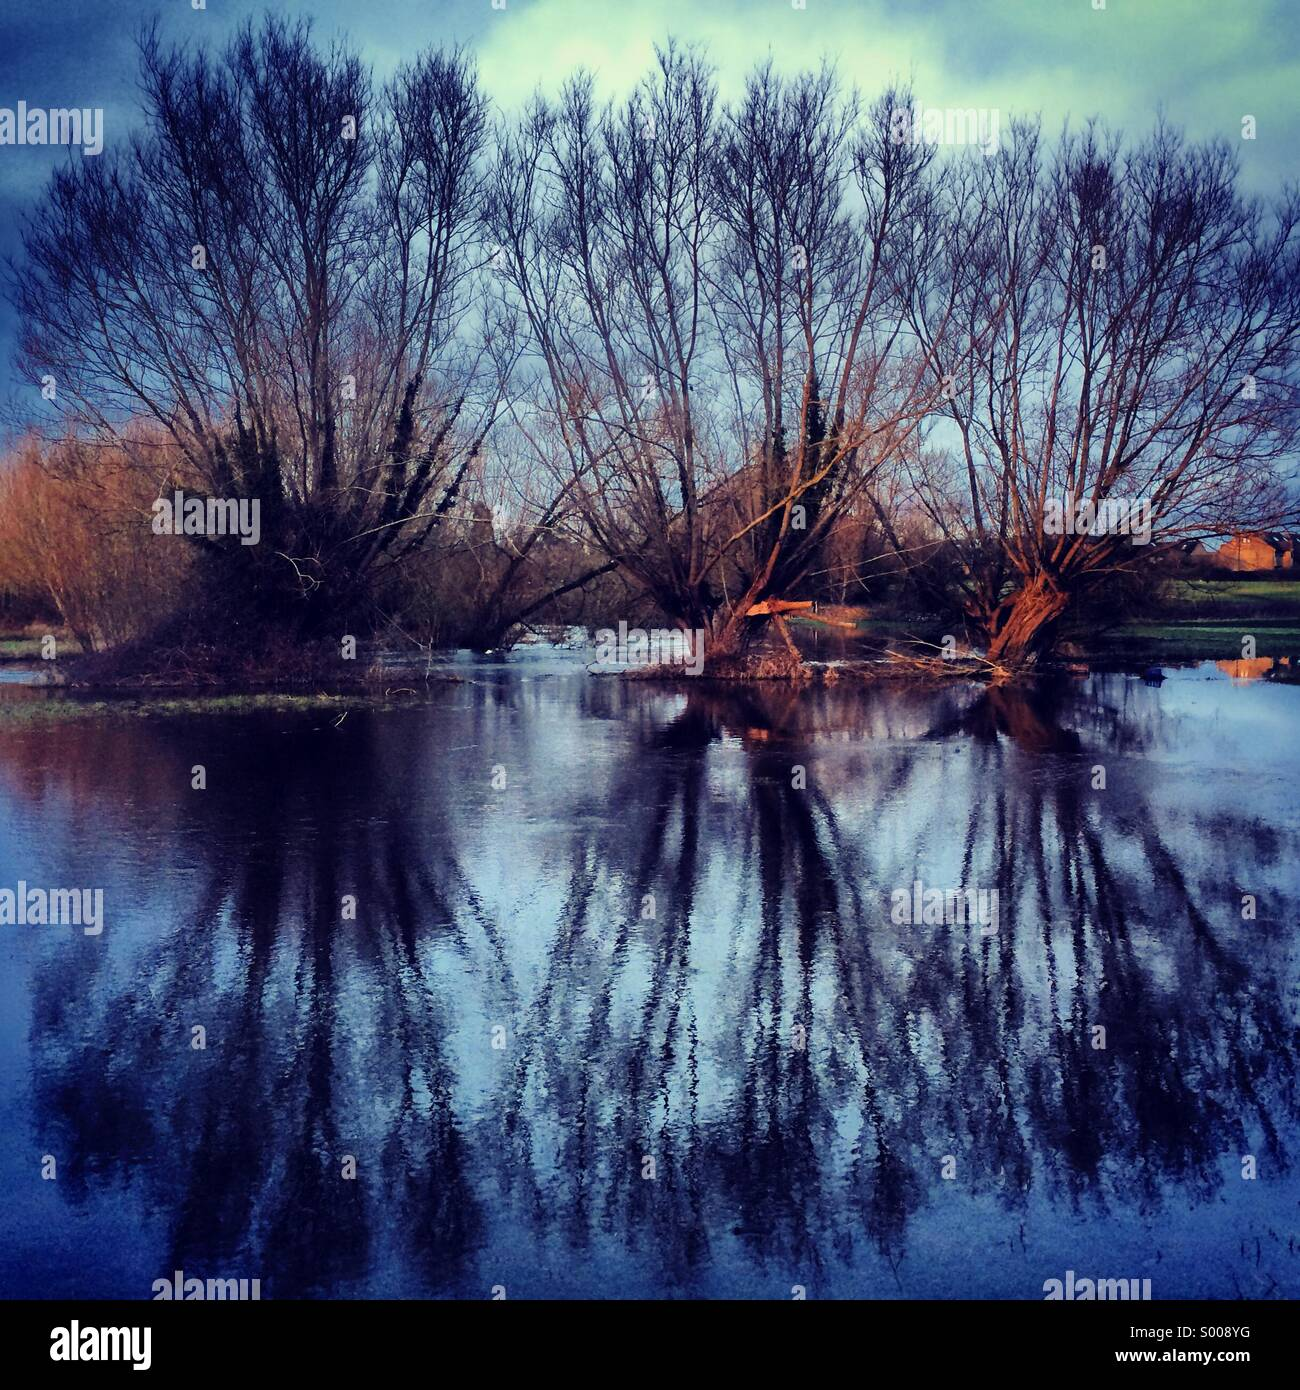 Winter trees and floods in Witney - Stock Image